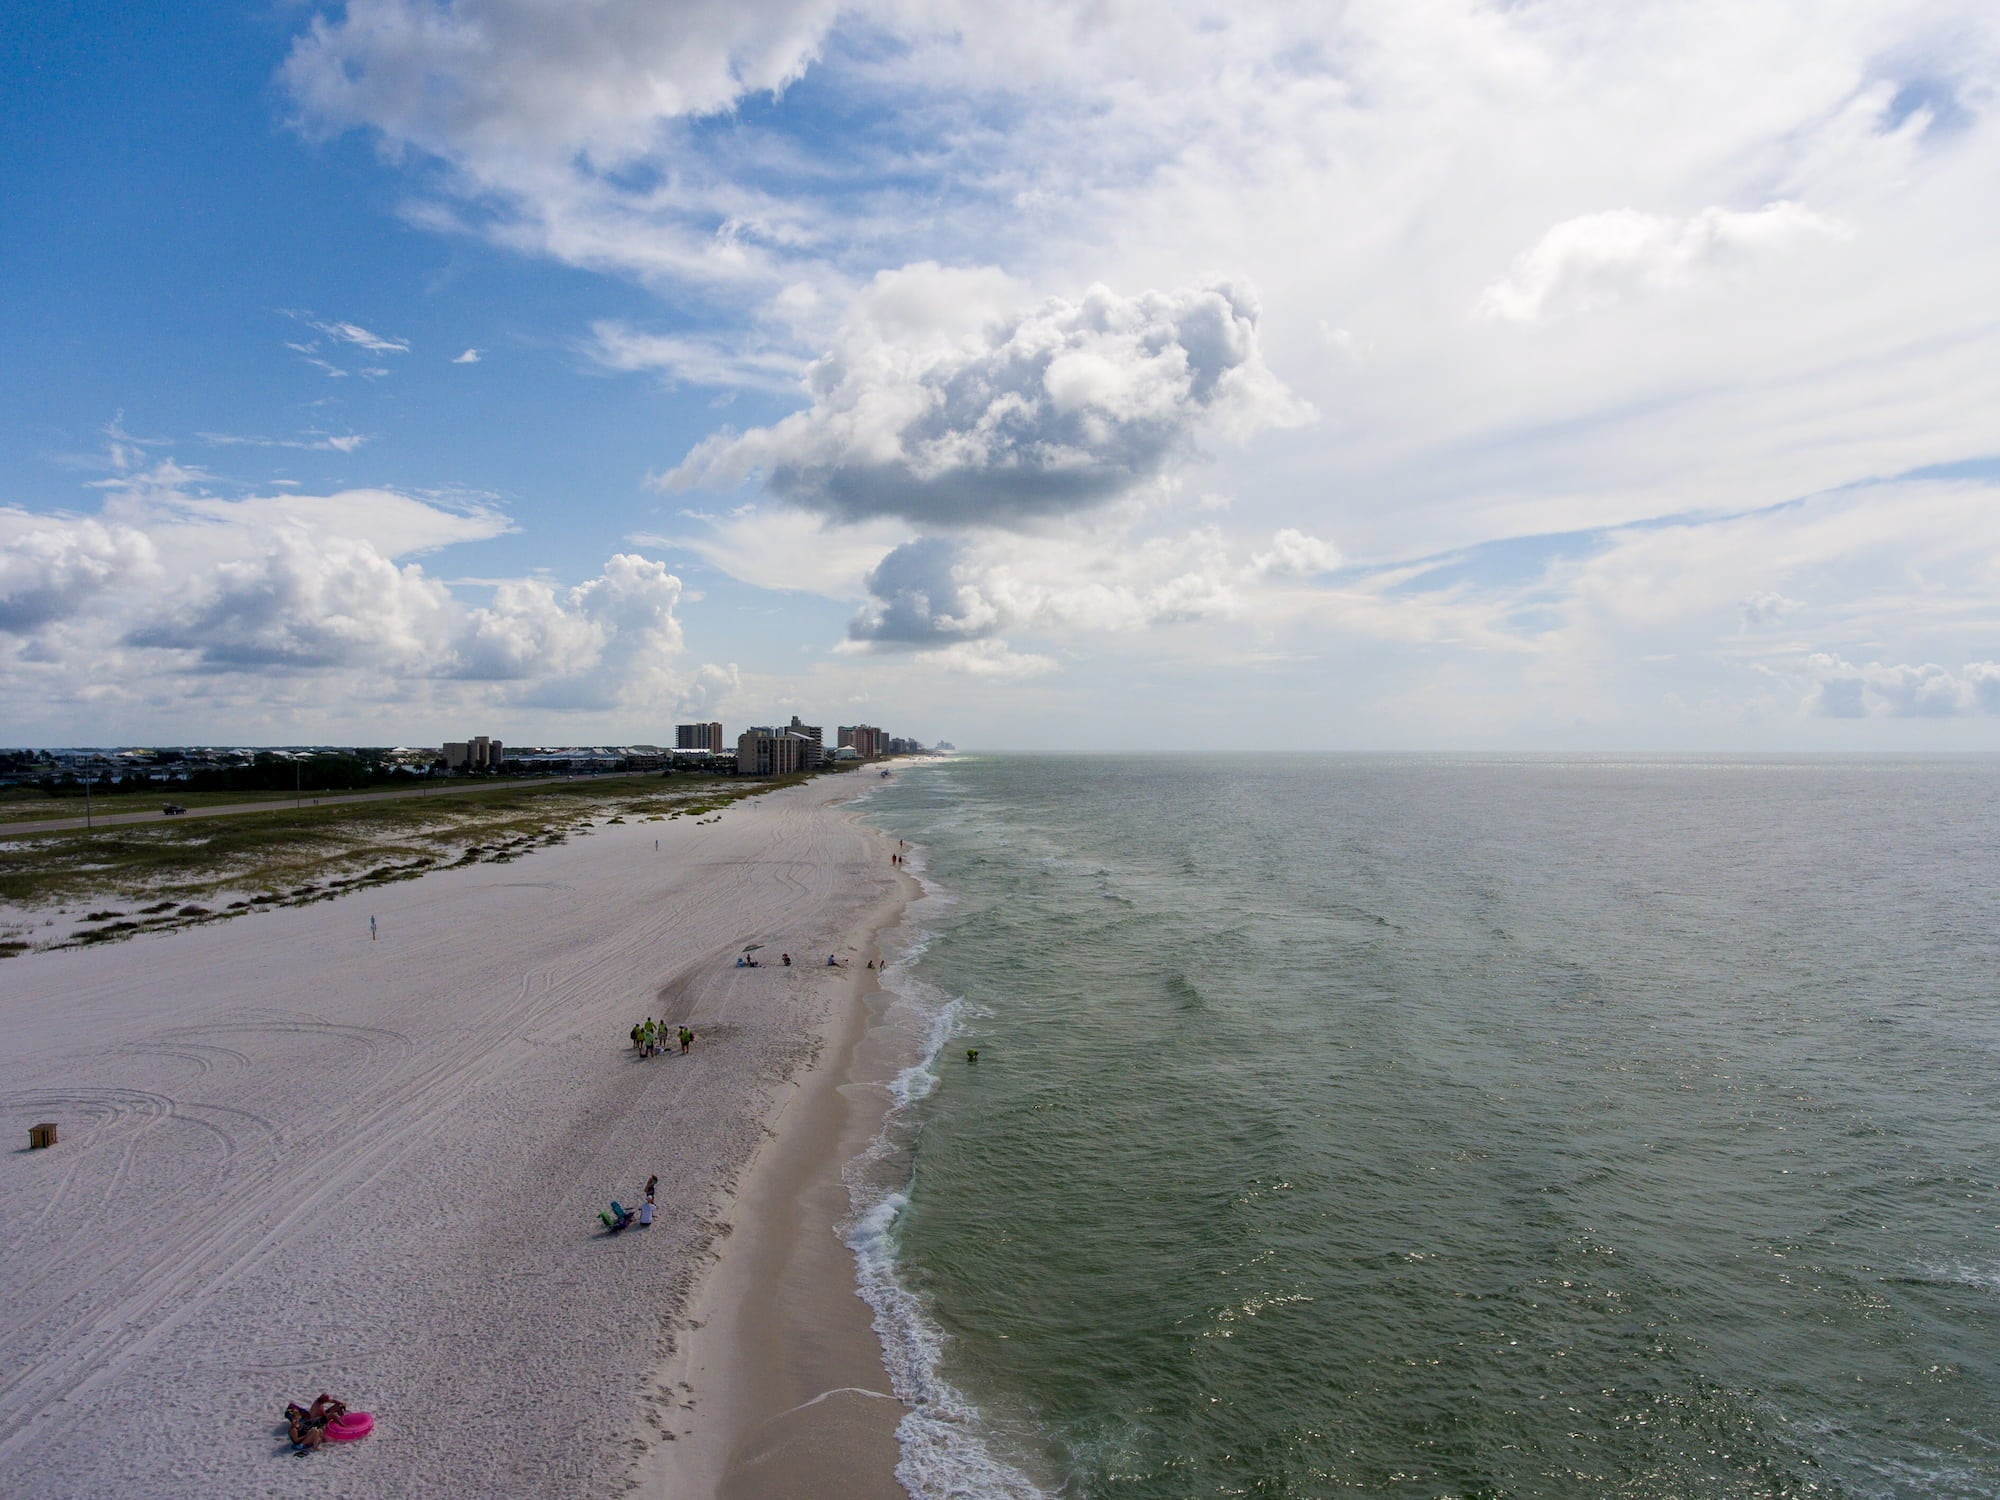 orange beach from a wide angle